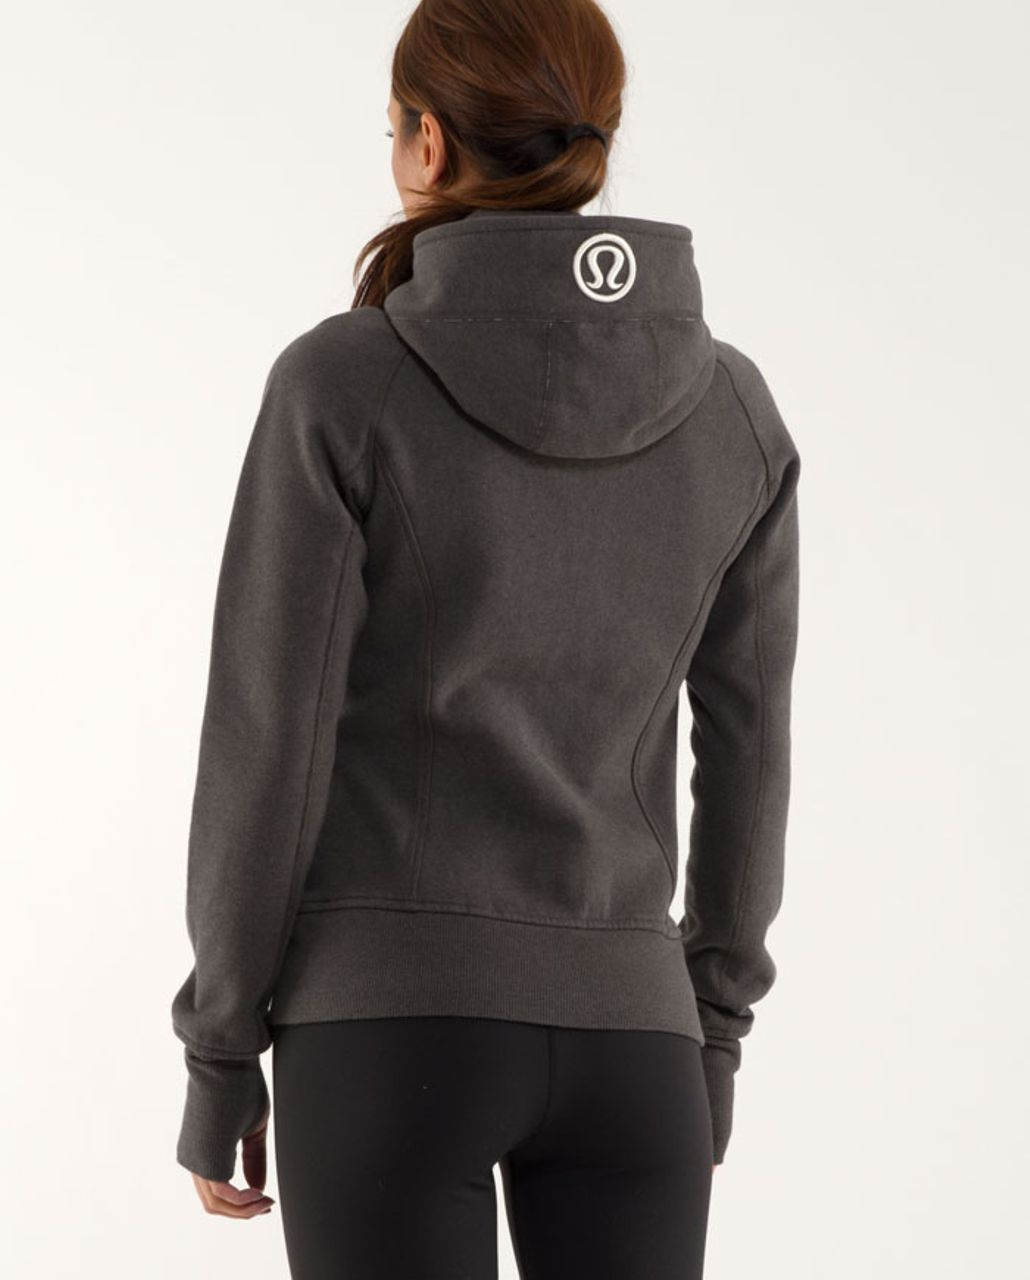 Lululemon Scuba Hoodie - Heathered Wren /  Ghost